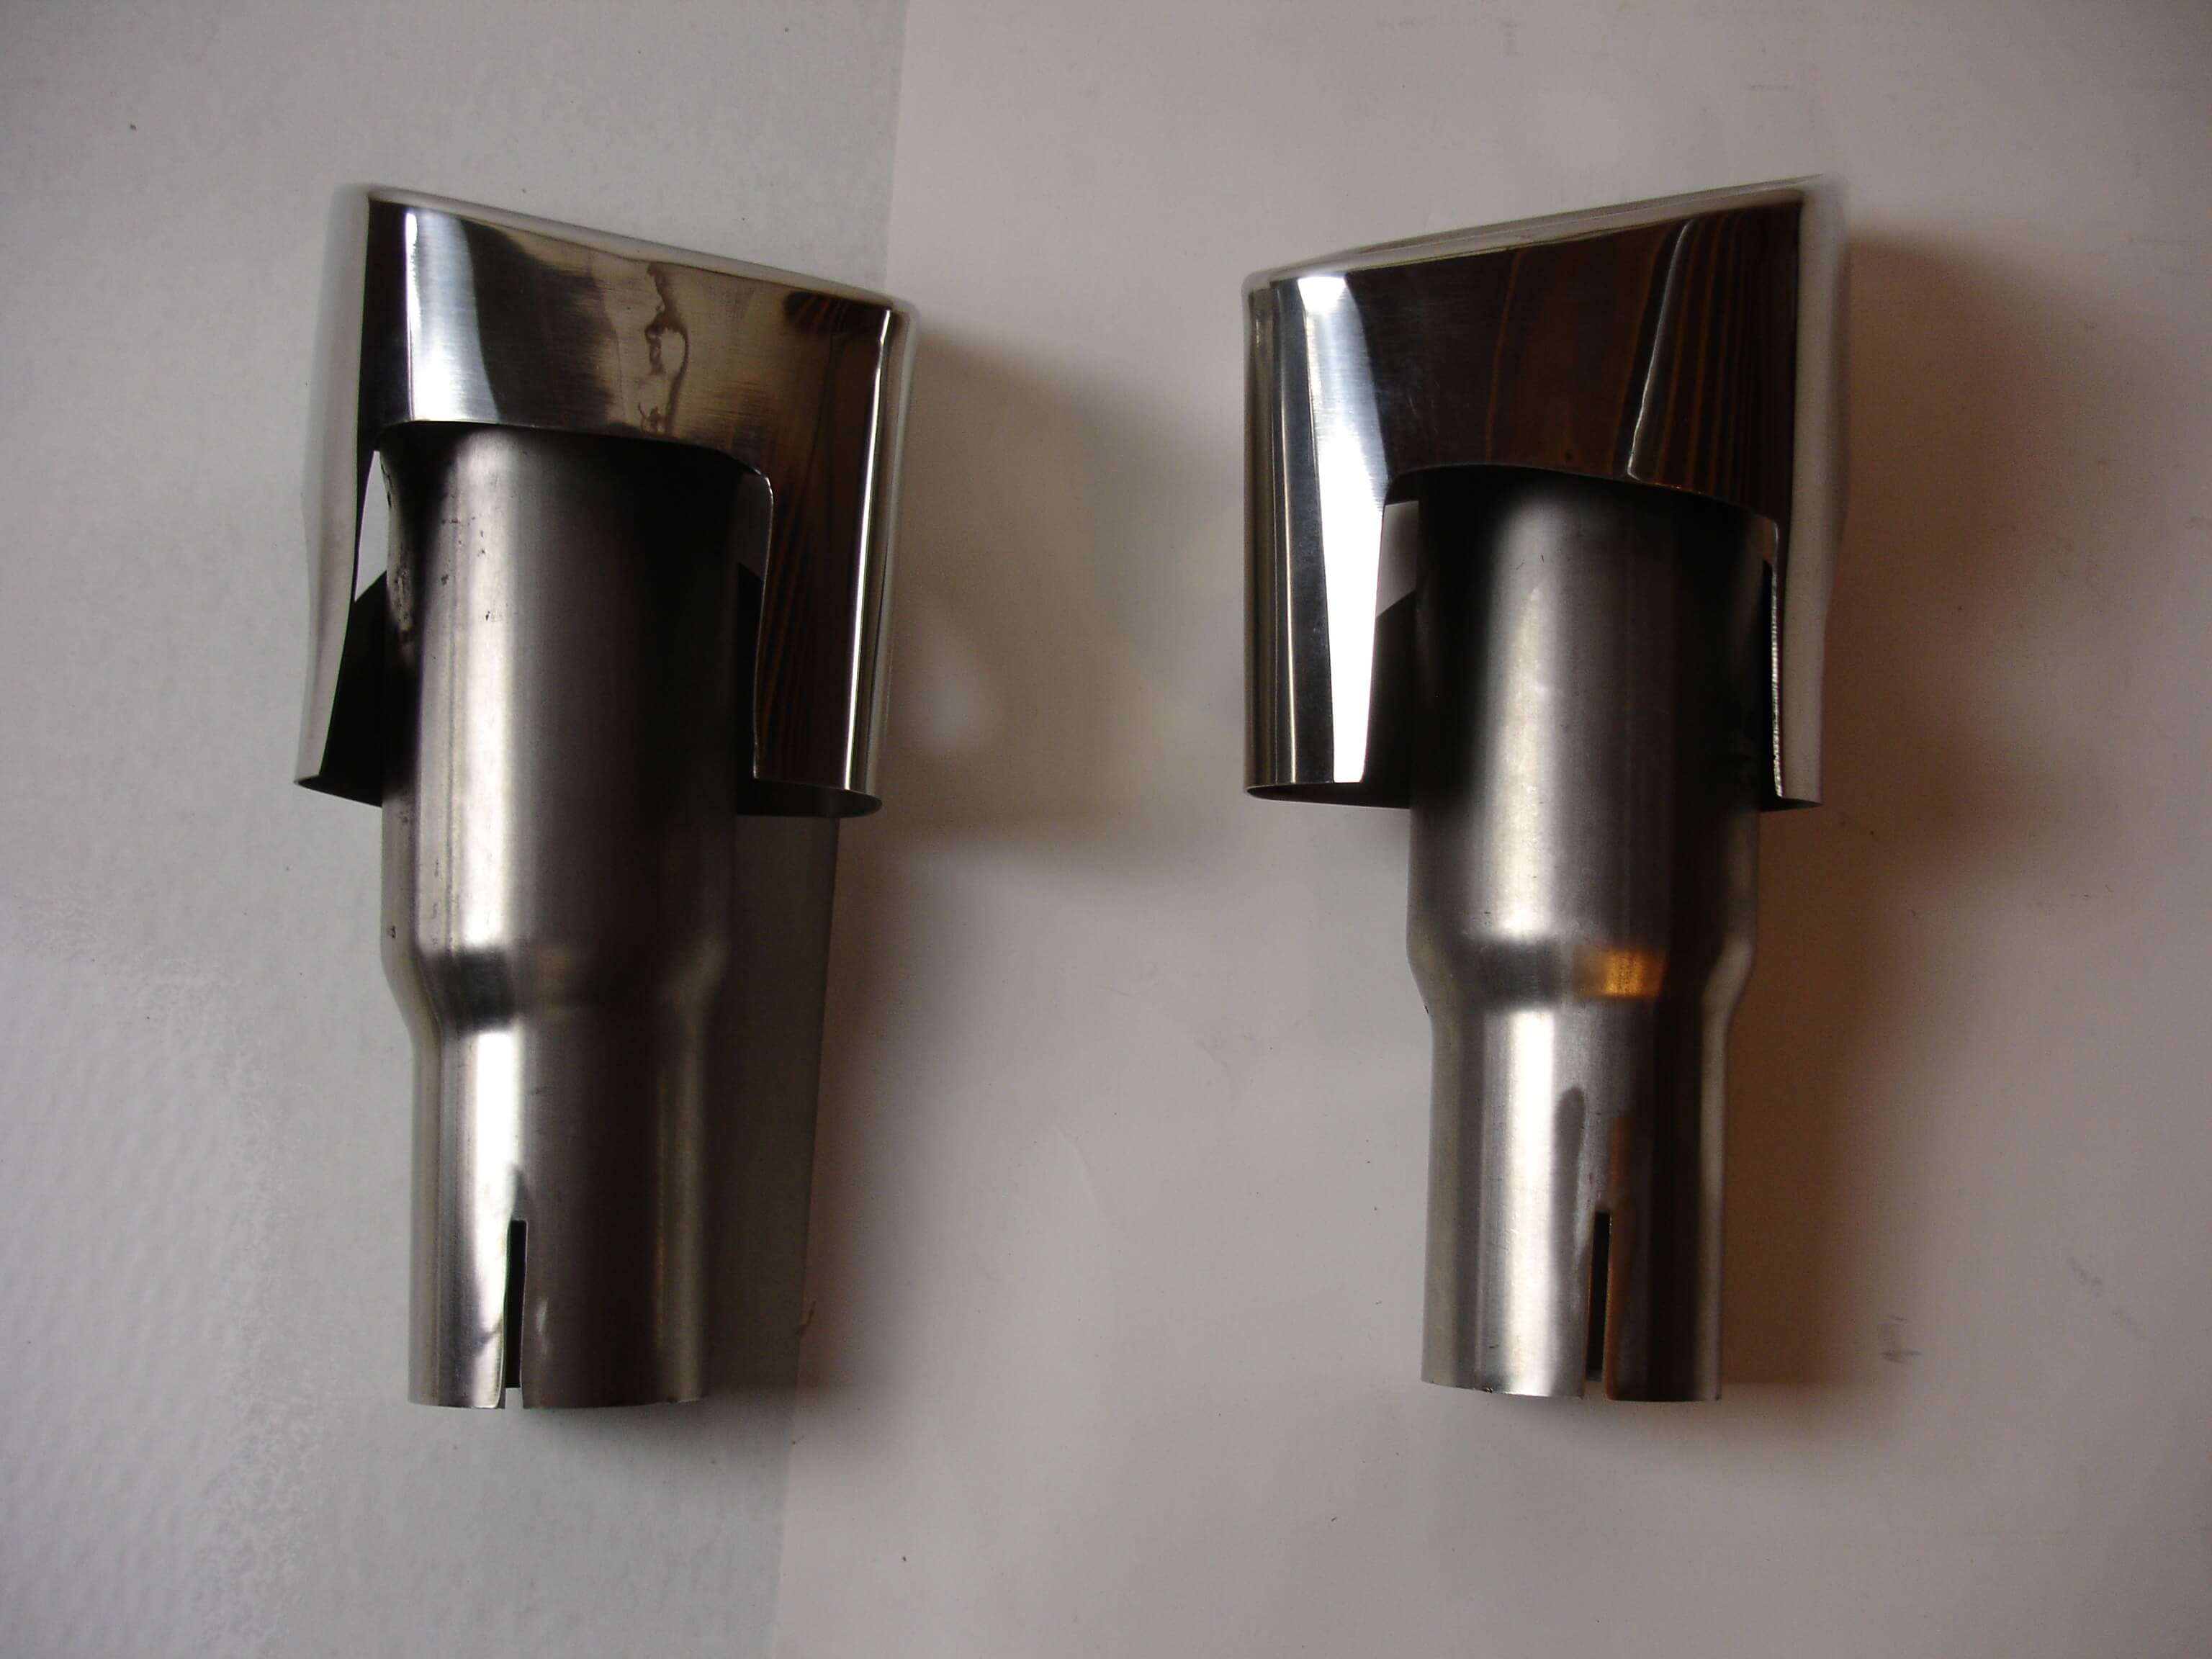 Land Rover Range Rover Sport Autobiography Style Exhaust Tips 10-14